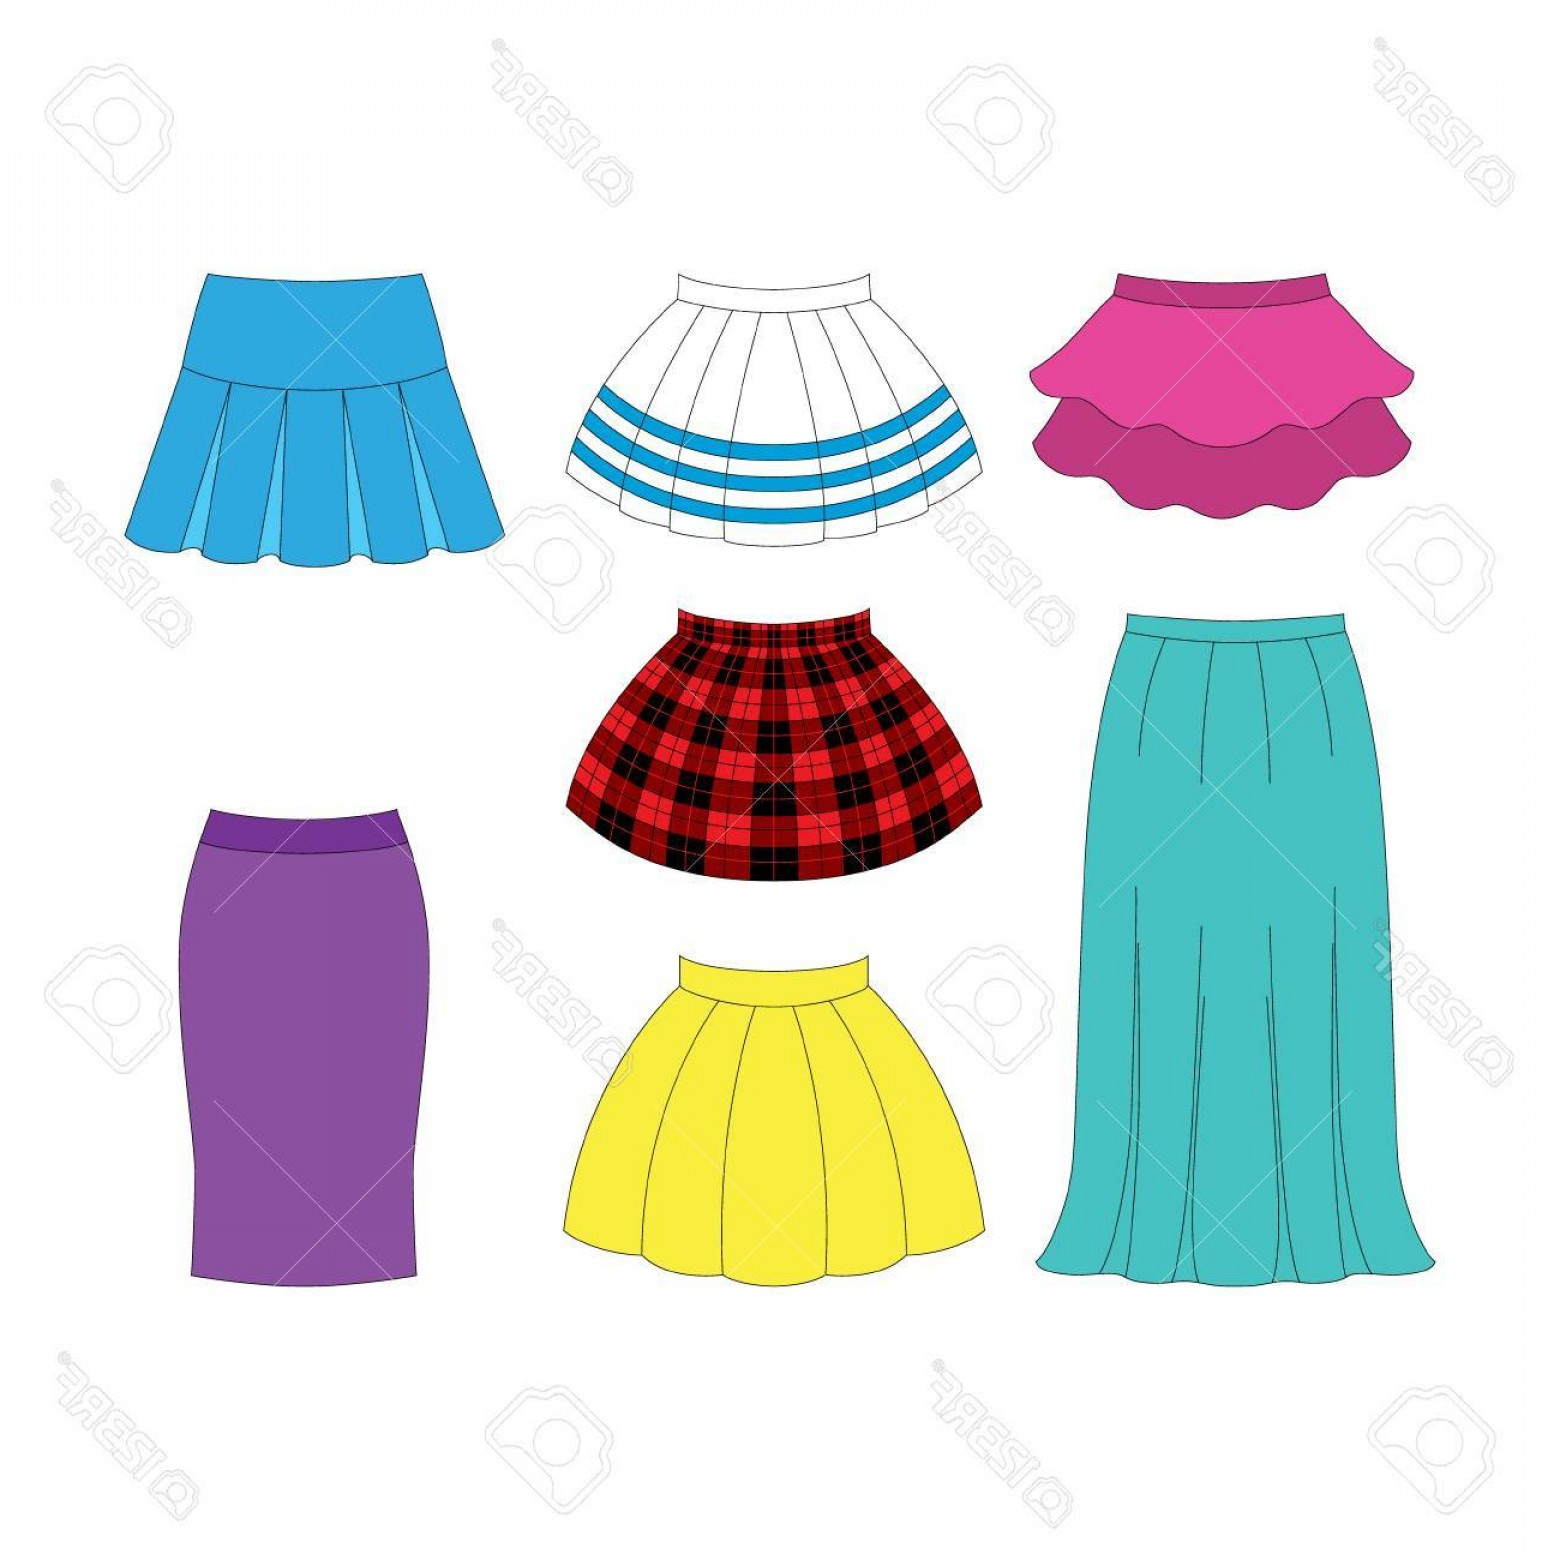 Red and black plaid skirt stock clipart jpg royalty free library Skirt Clip Art Vector | SOIDERGI jpg royalty free library